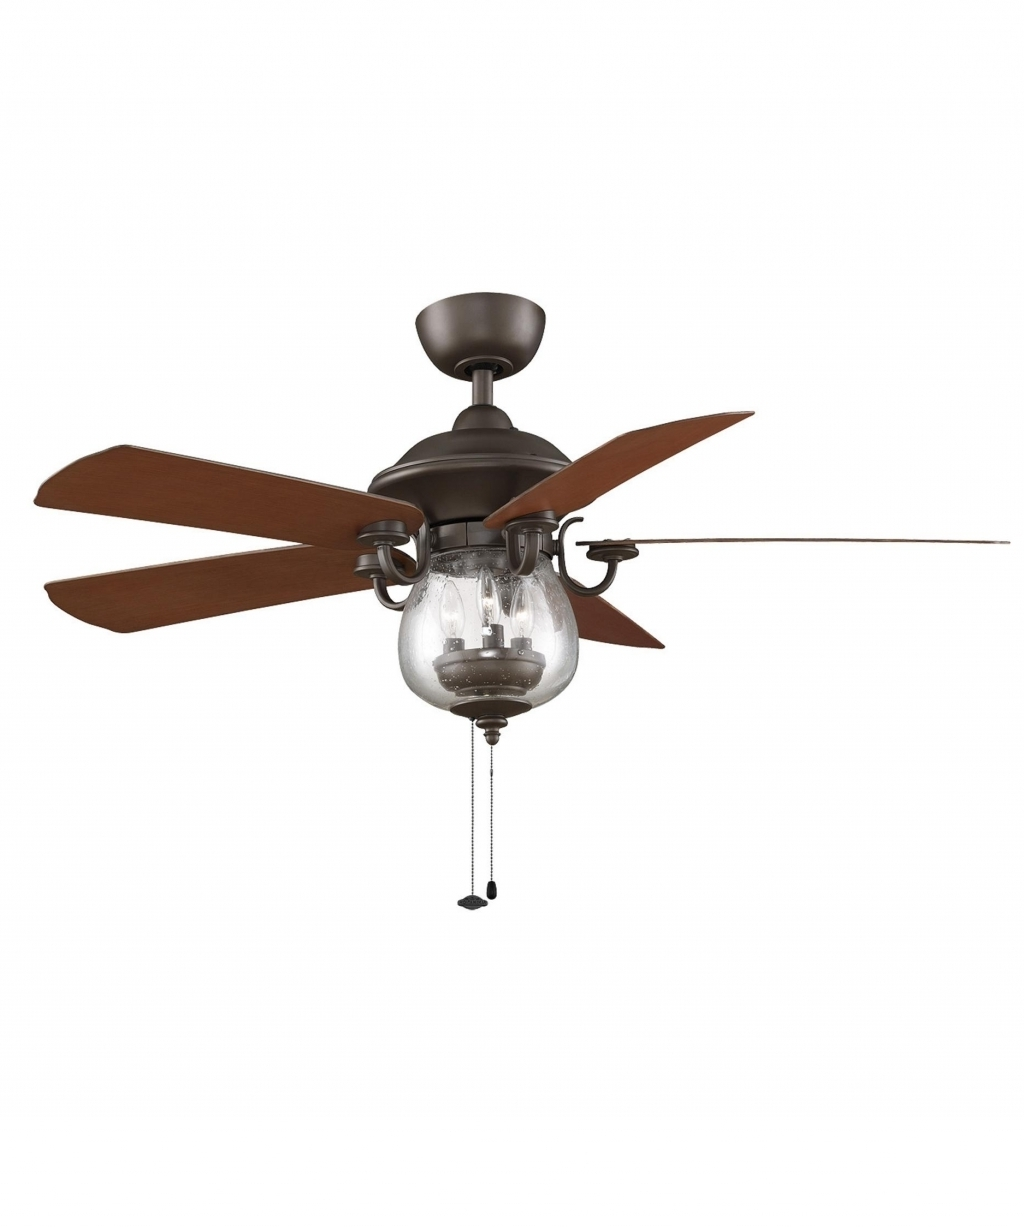 Most Recent Interior Design: Flush Mount Outdoor Ceiling Fans Fresh Ceiling Intended For Small Outdoor Ceiling Fans With Lights (View 9 of 20)